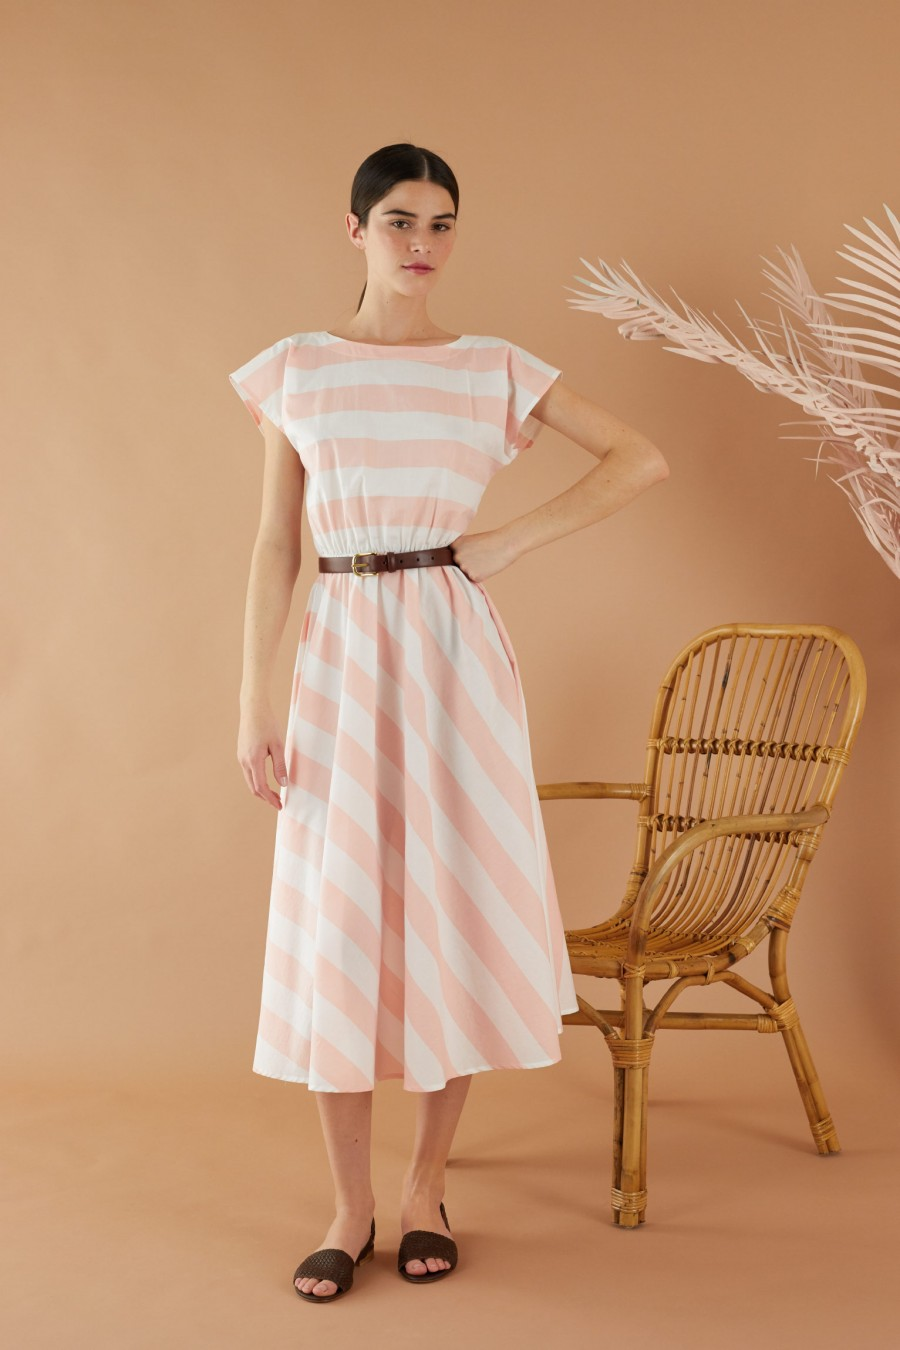 Pink and white striped summer dress